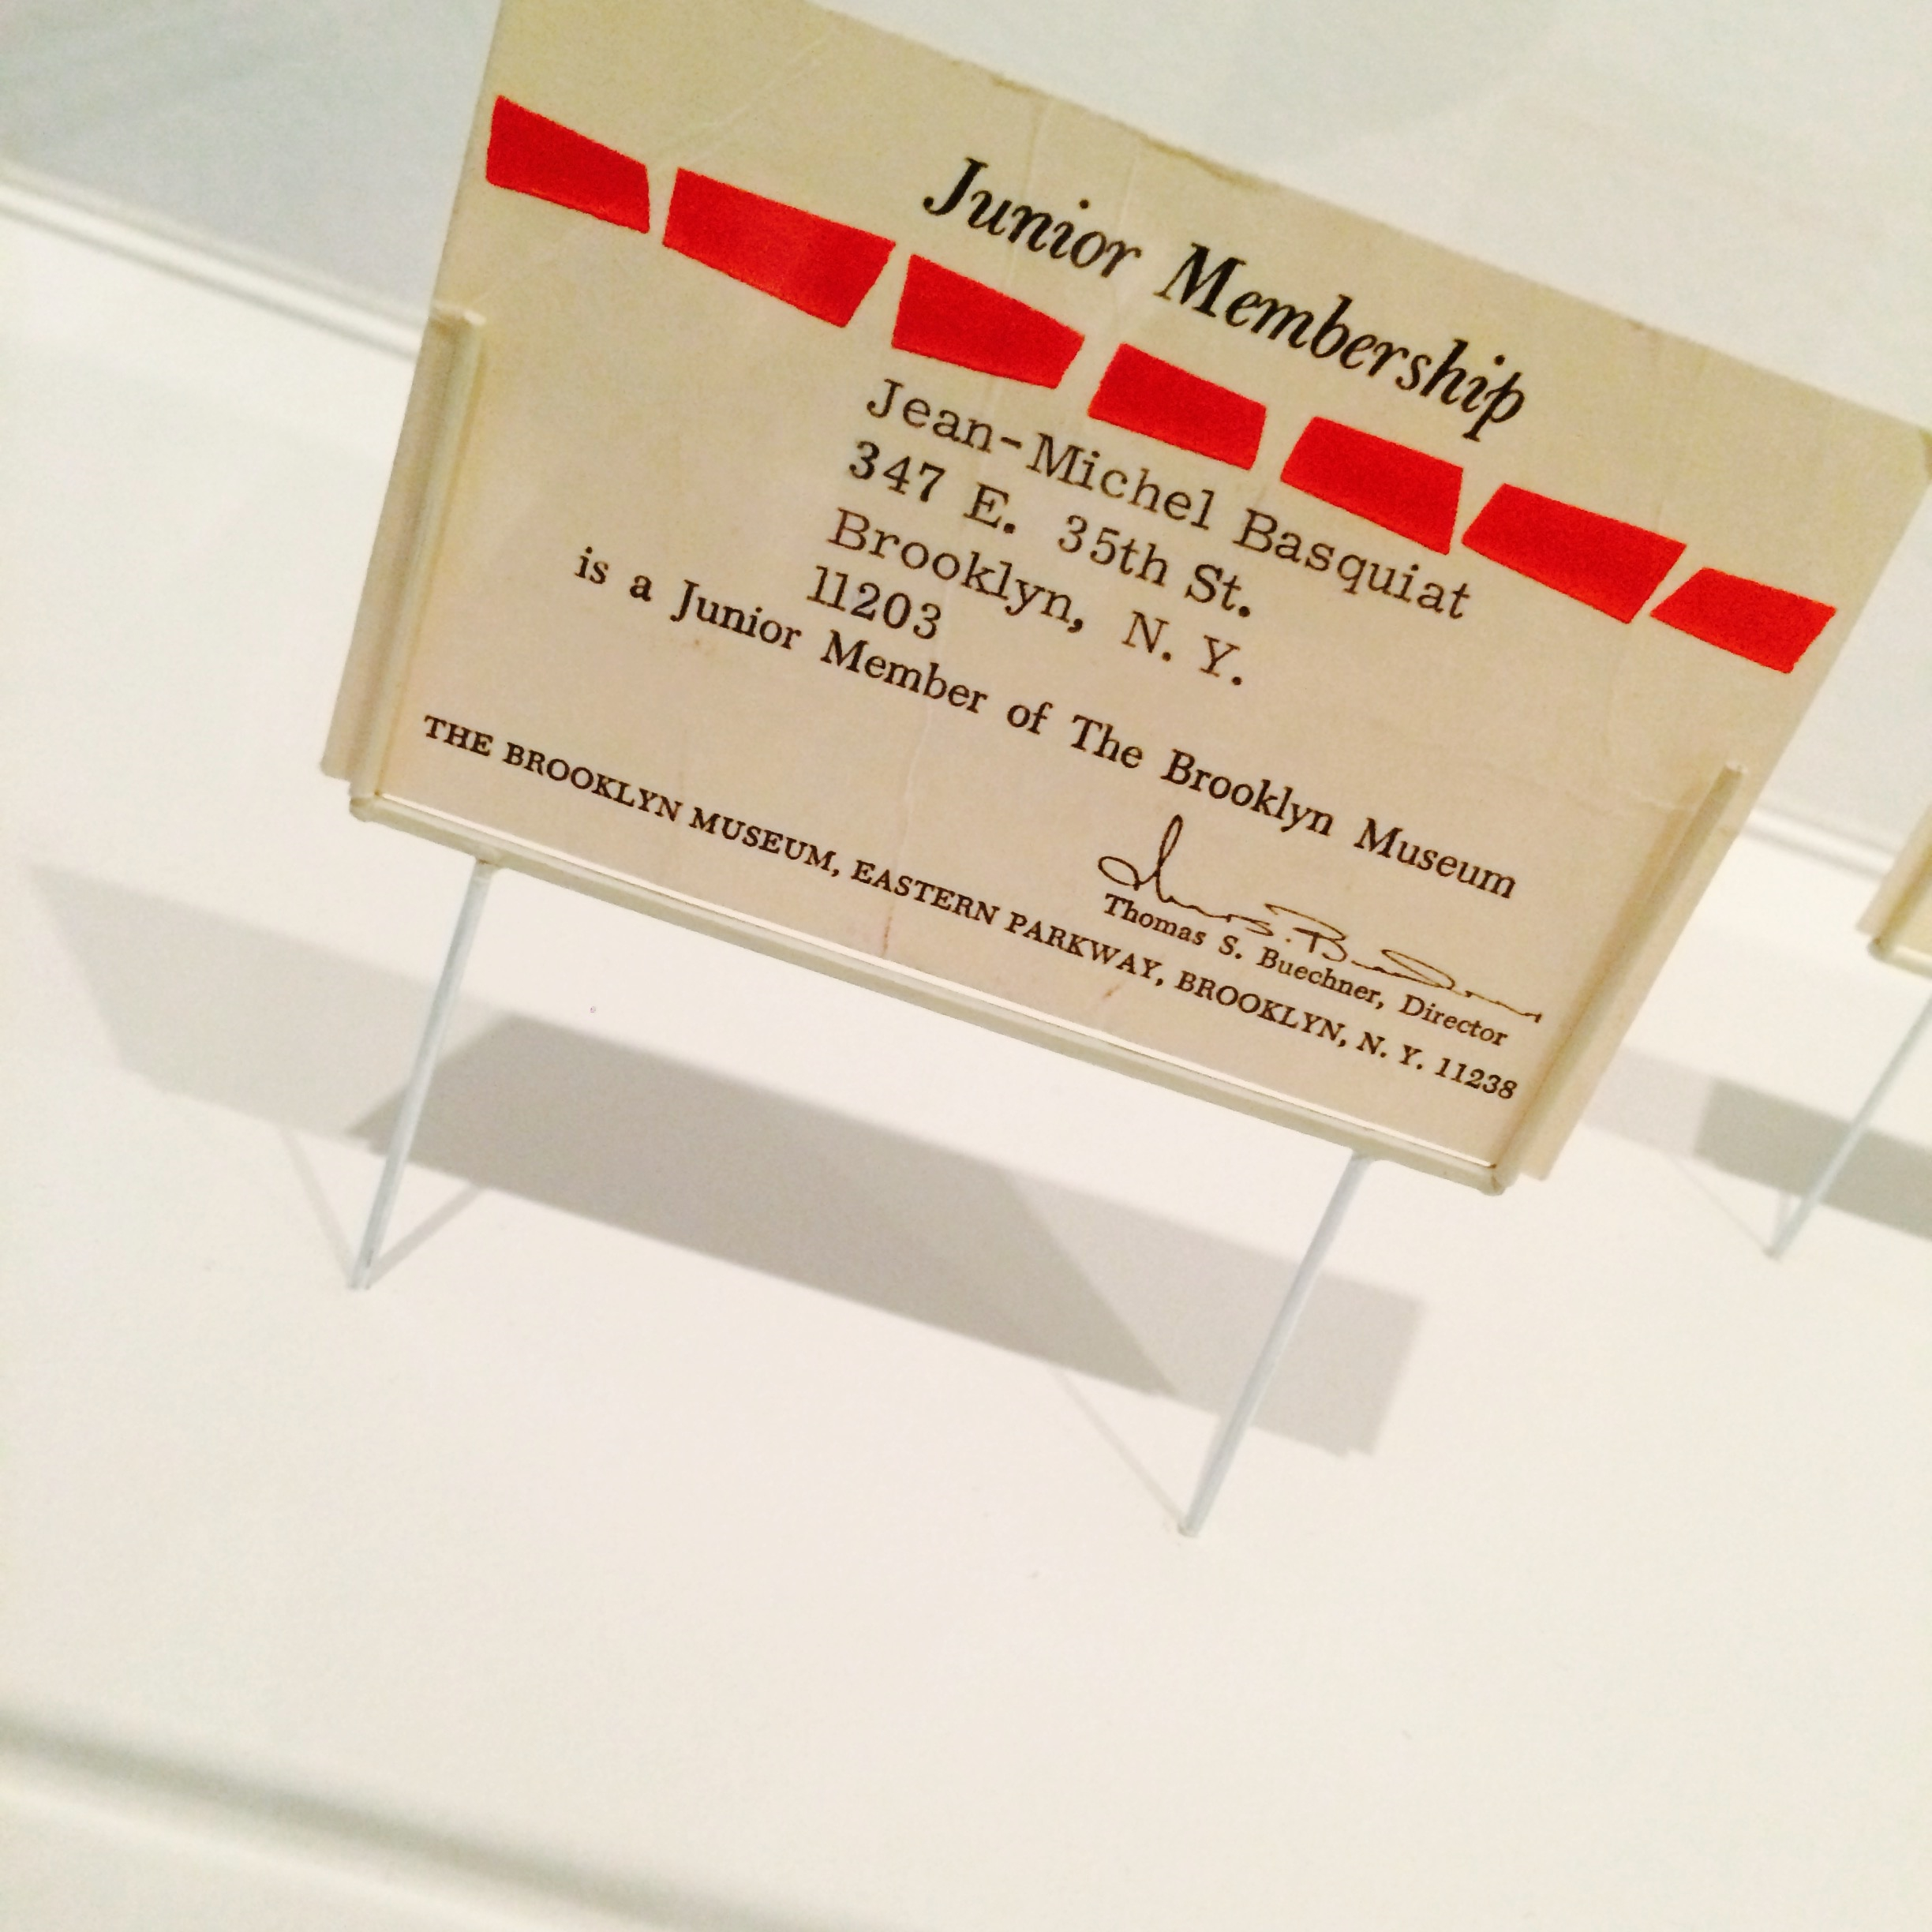 Among the archival treasures at the Brooklyn museum was this original junior membership to the museum that belonged toJean-Michel Basquiat.